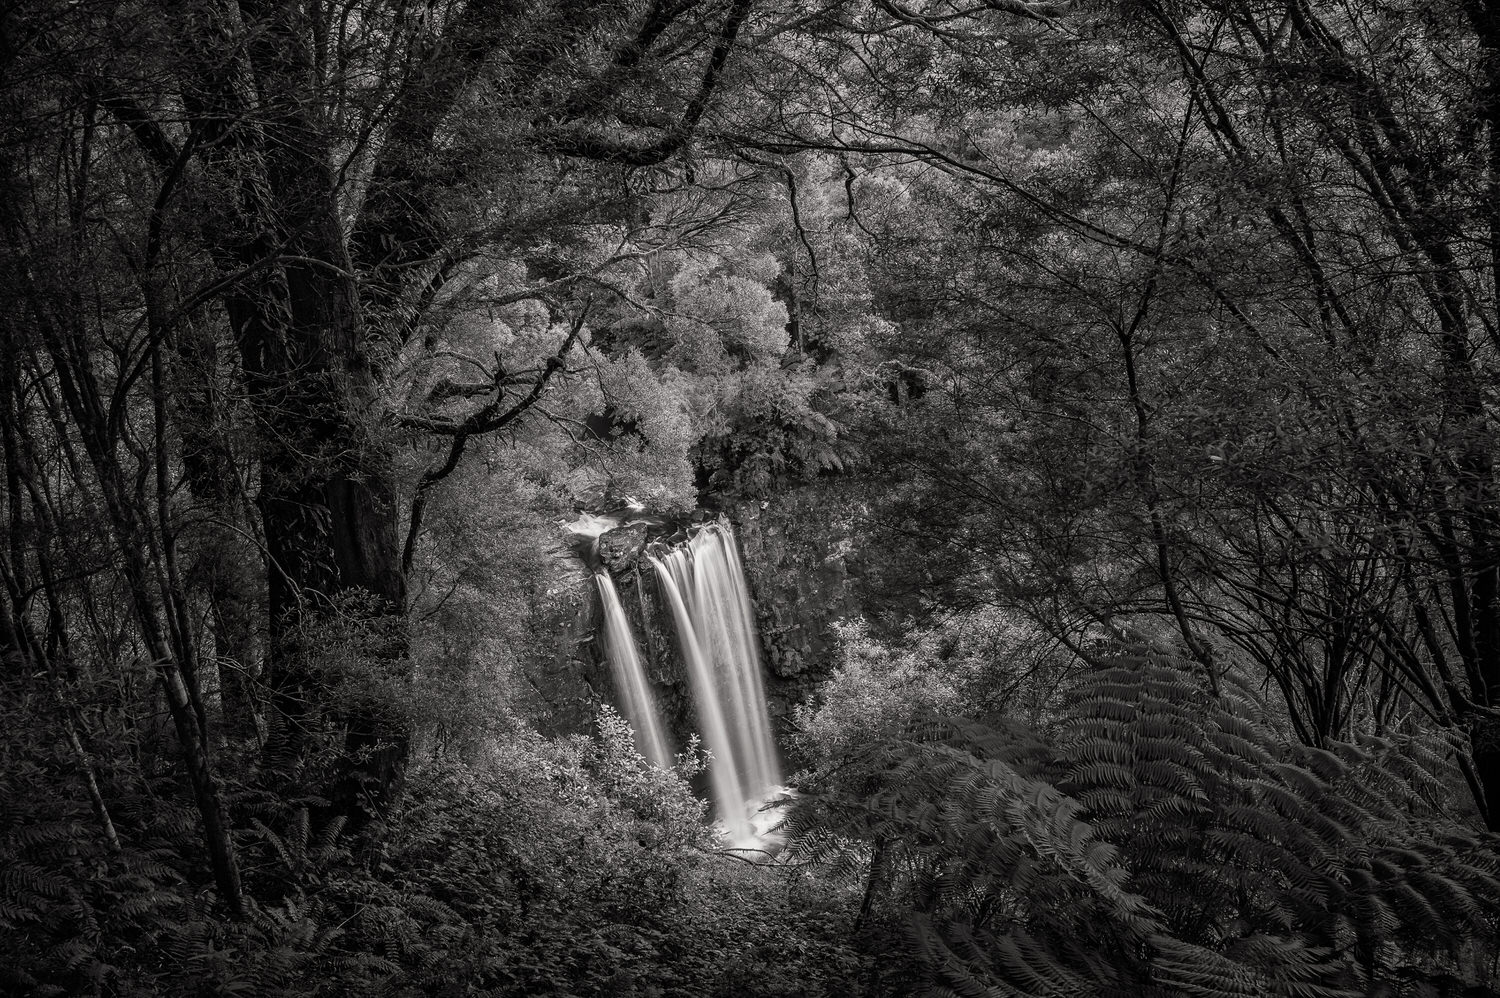 A black and white photo featuring the magnificent    Erskine Falls    and surrounding rainforest from the    lookout point   .